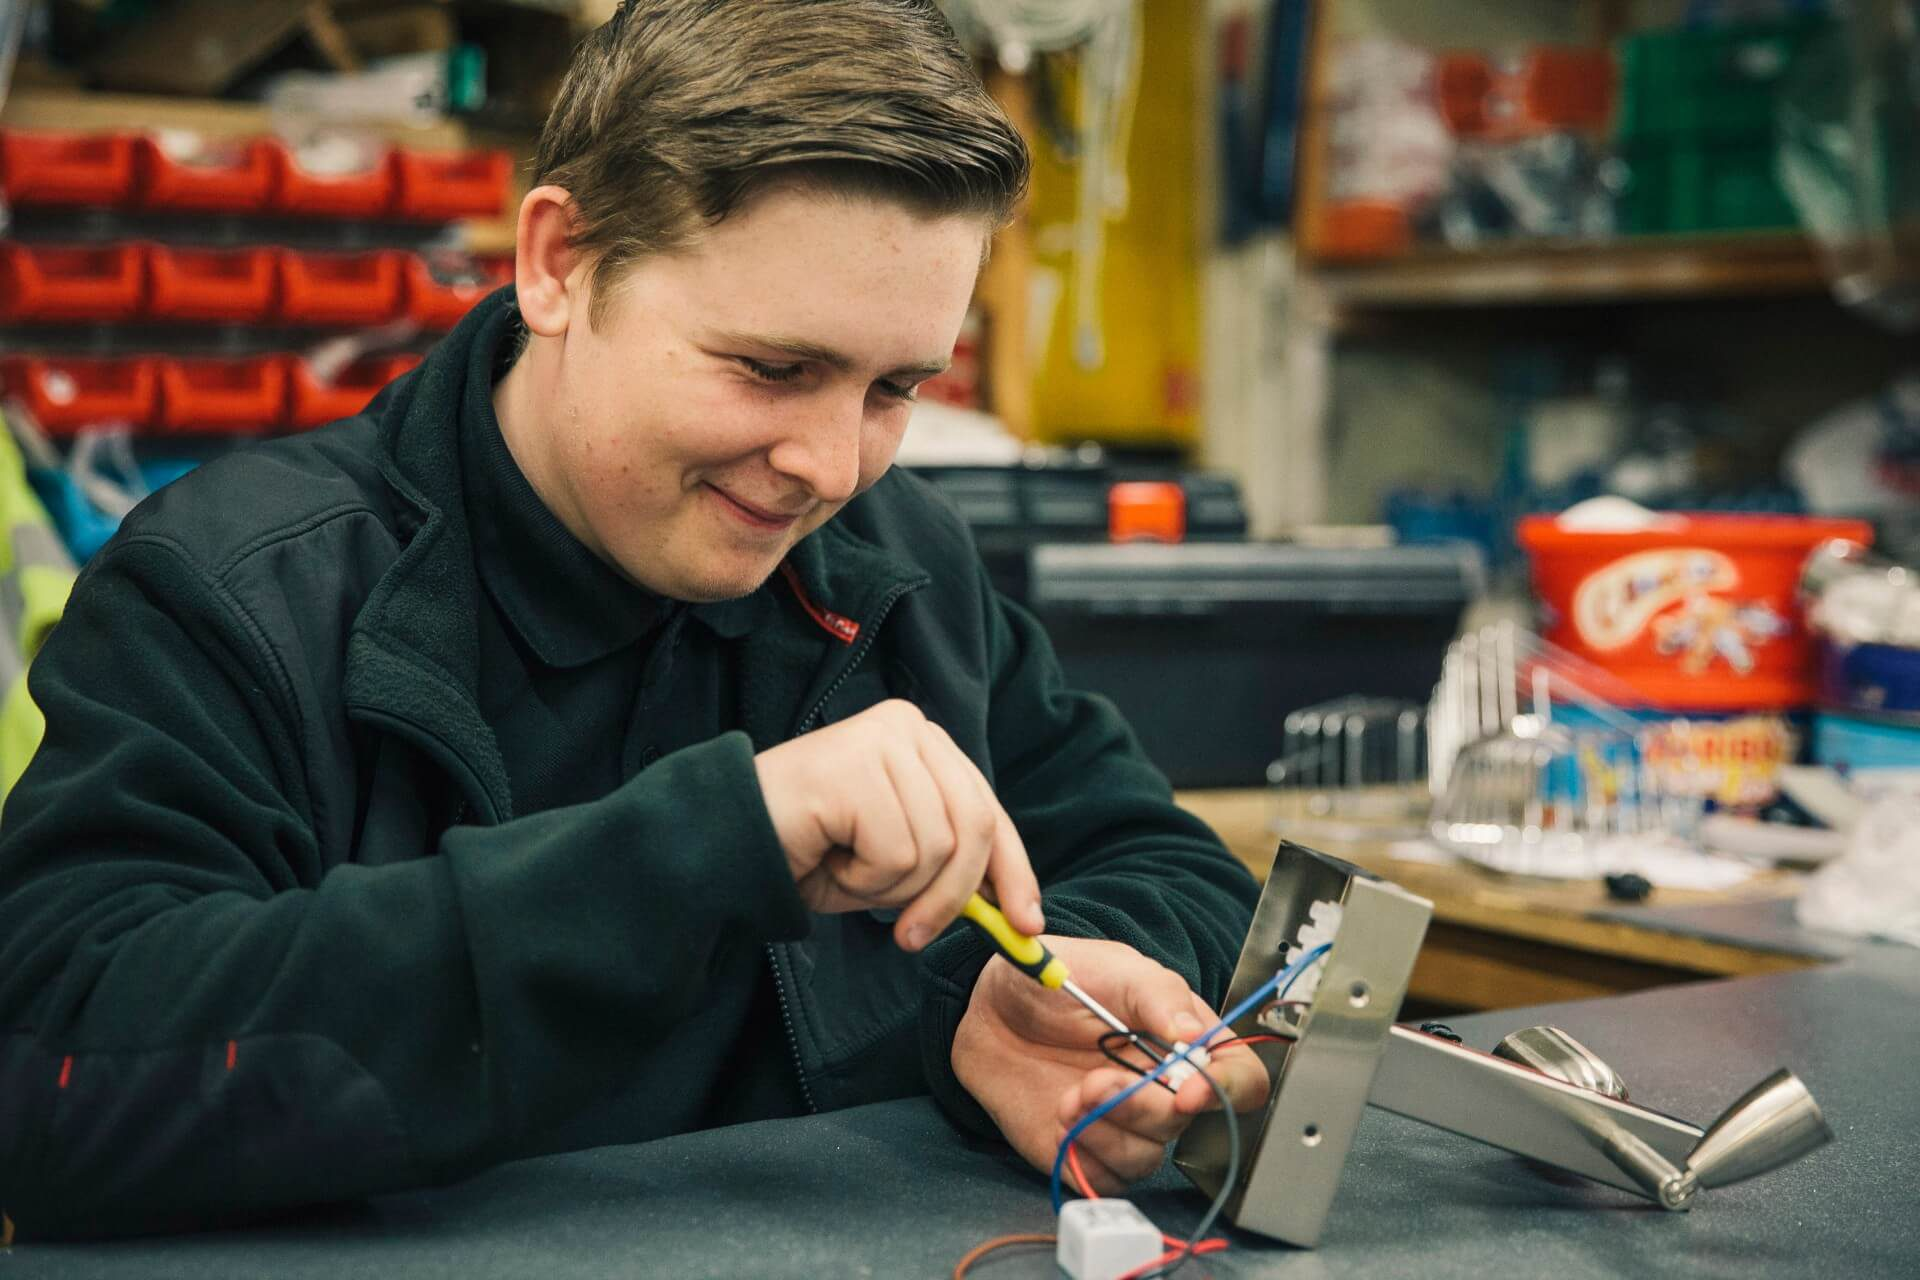 Hilton apprentice, Ross Budd works on some lights at a workbench